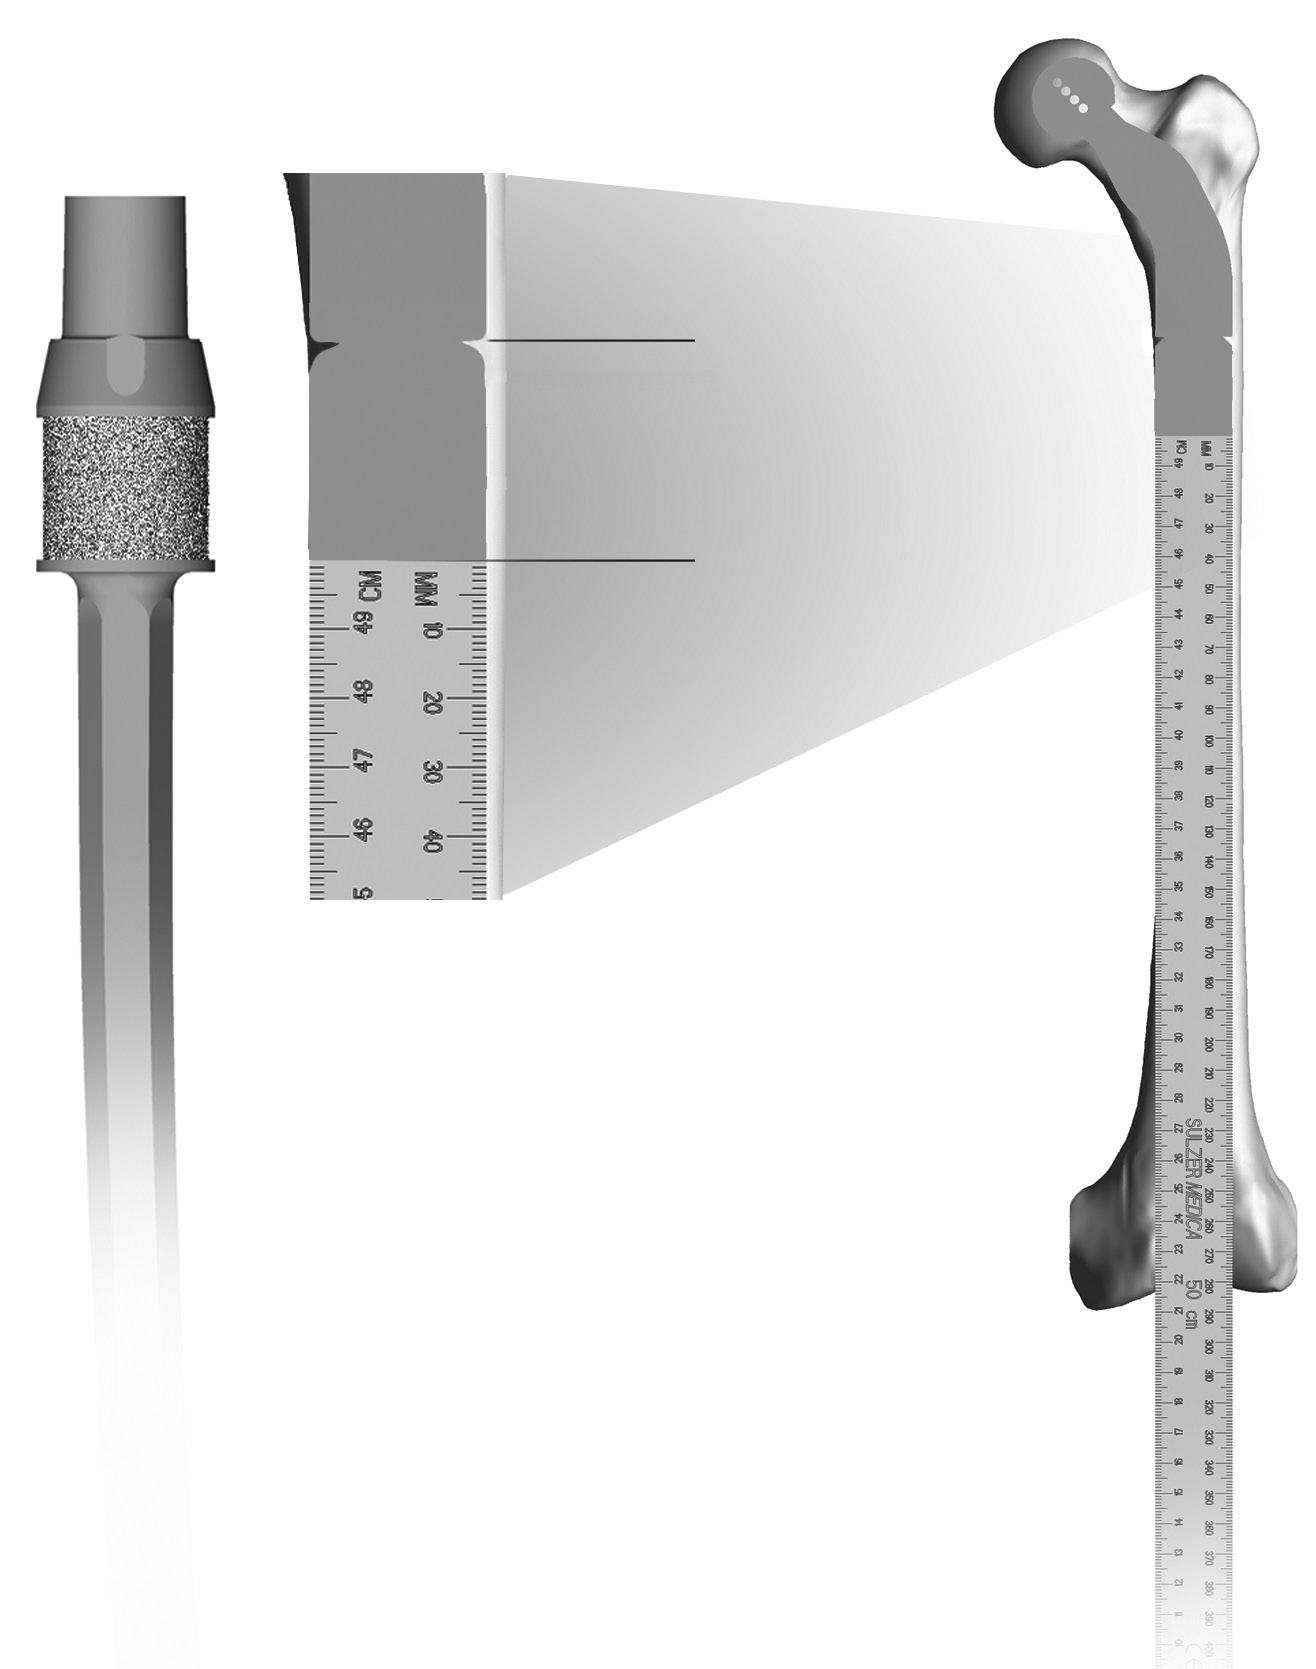 Zimmer MOST Options System Surgical Technique 39 Femoral Measurement and Resection Use the Proximal Femoral Ruler (Fig.